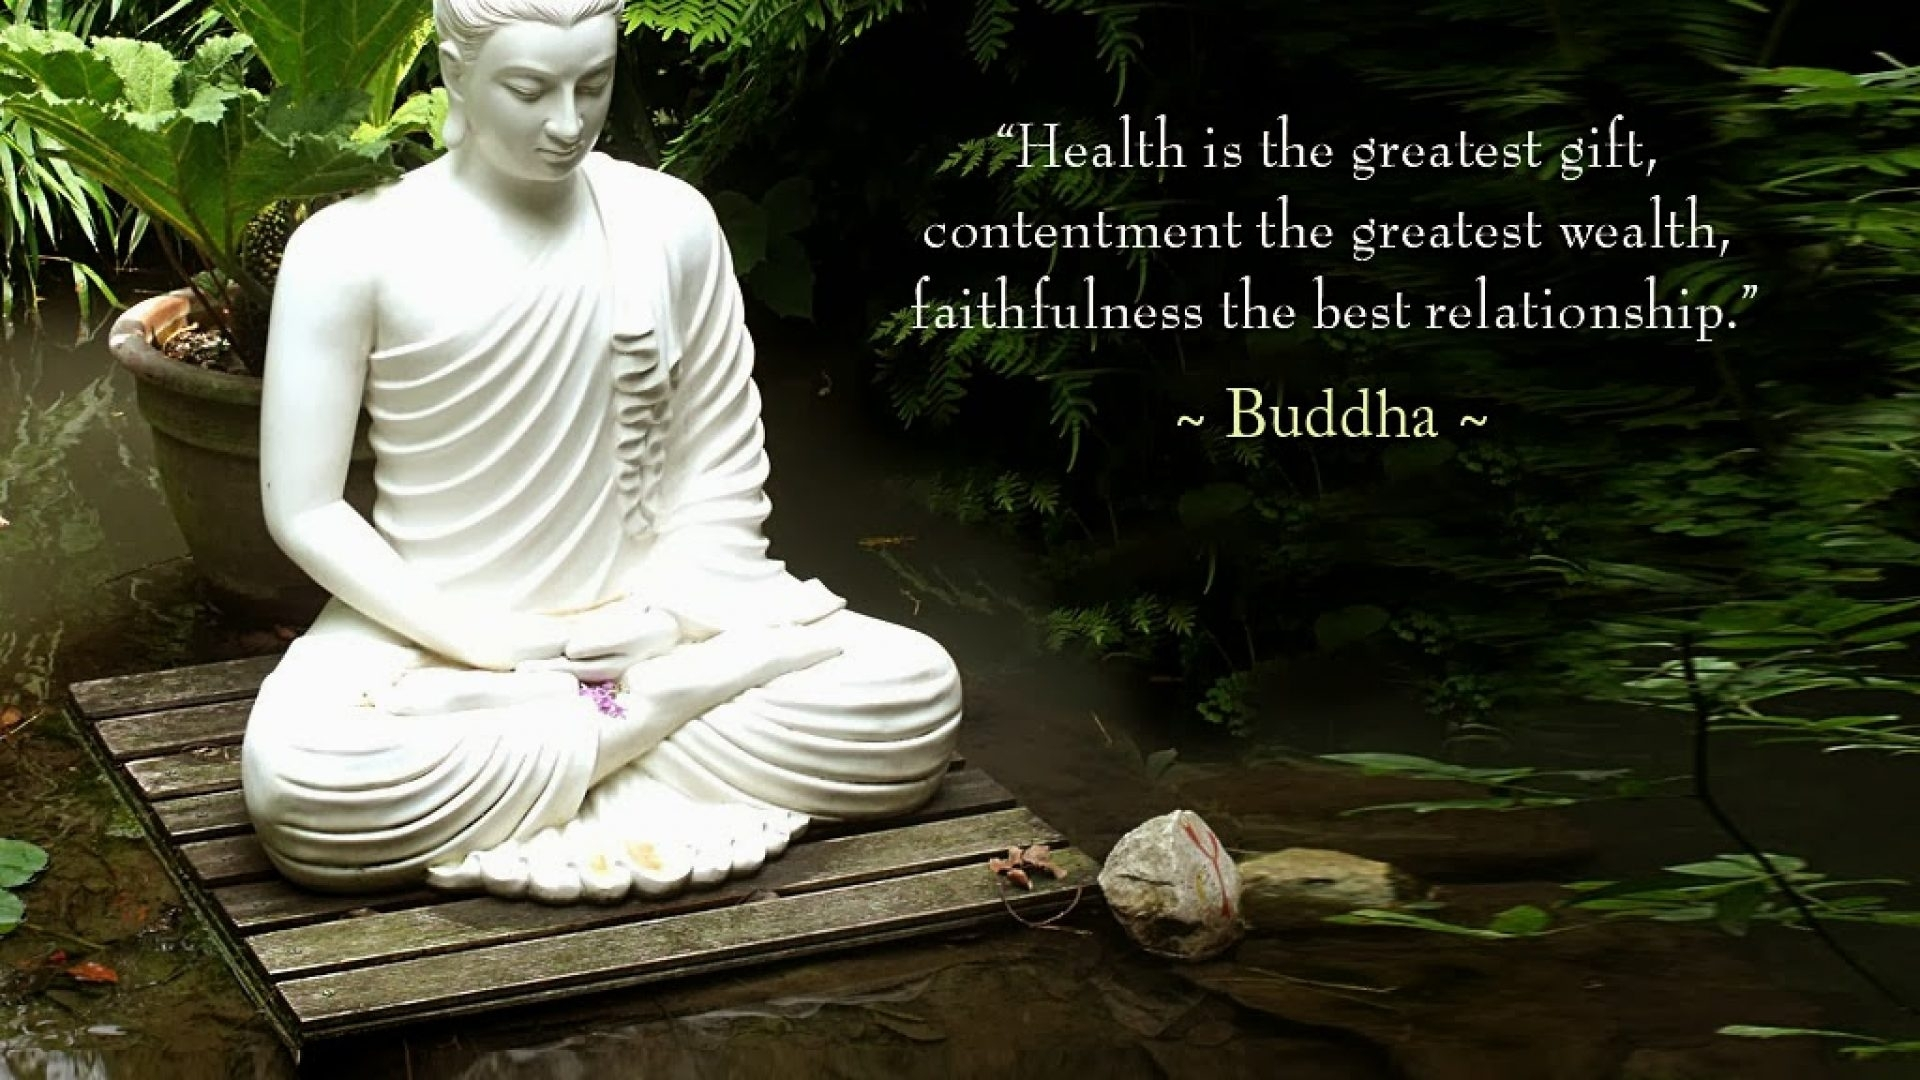 10 best buddha wallpaper widescreen hd full hd 1080p for pc